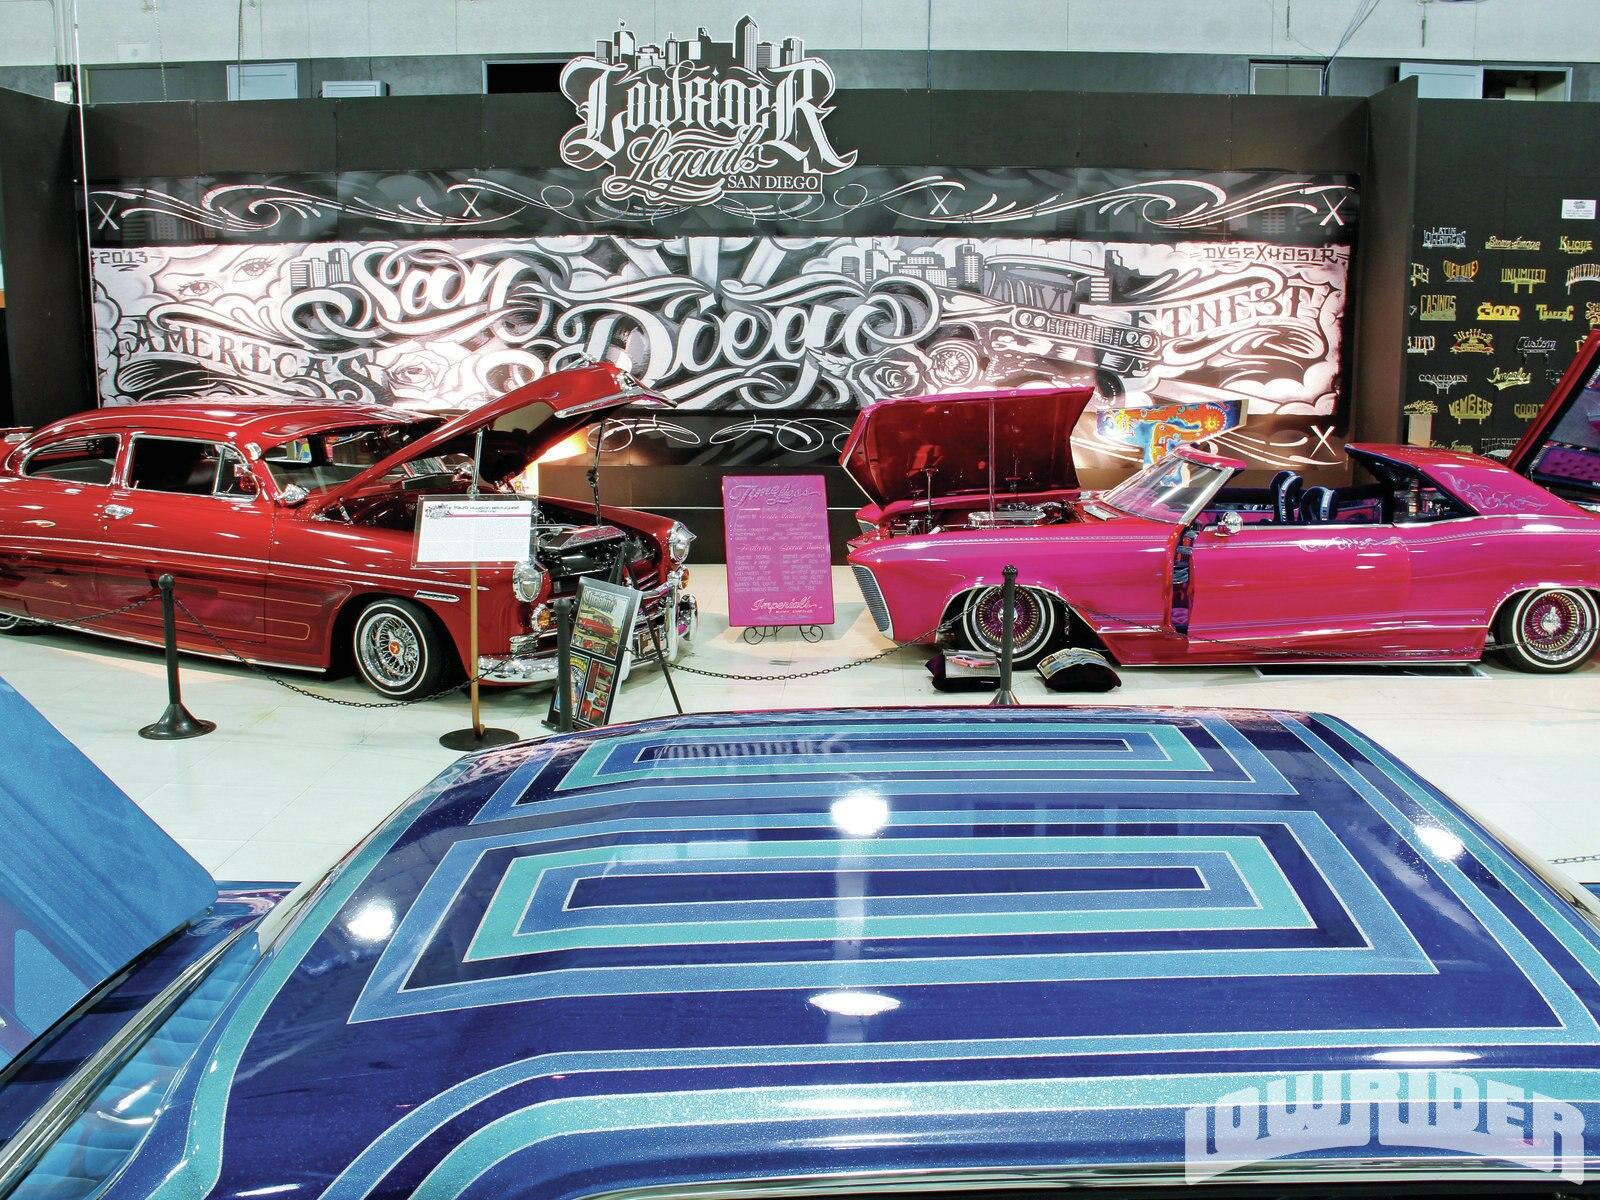 san-diego-lowrider-legends-display-cars1